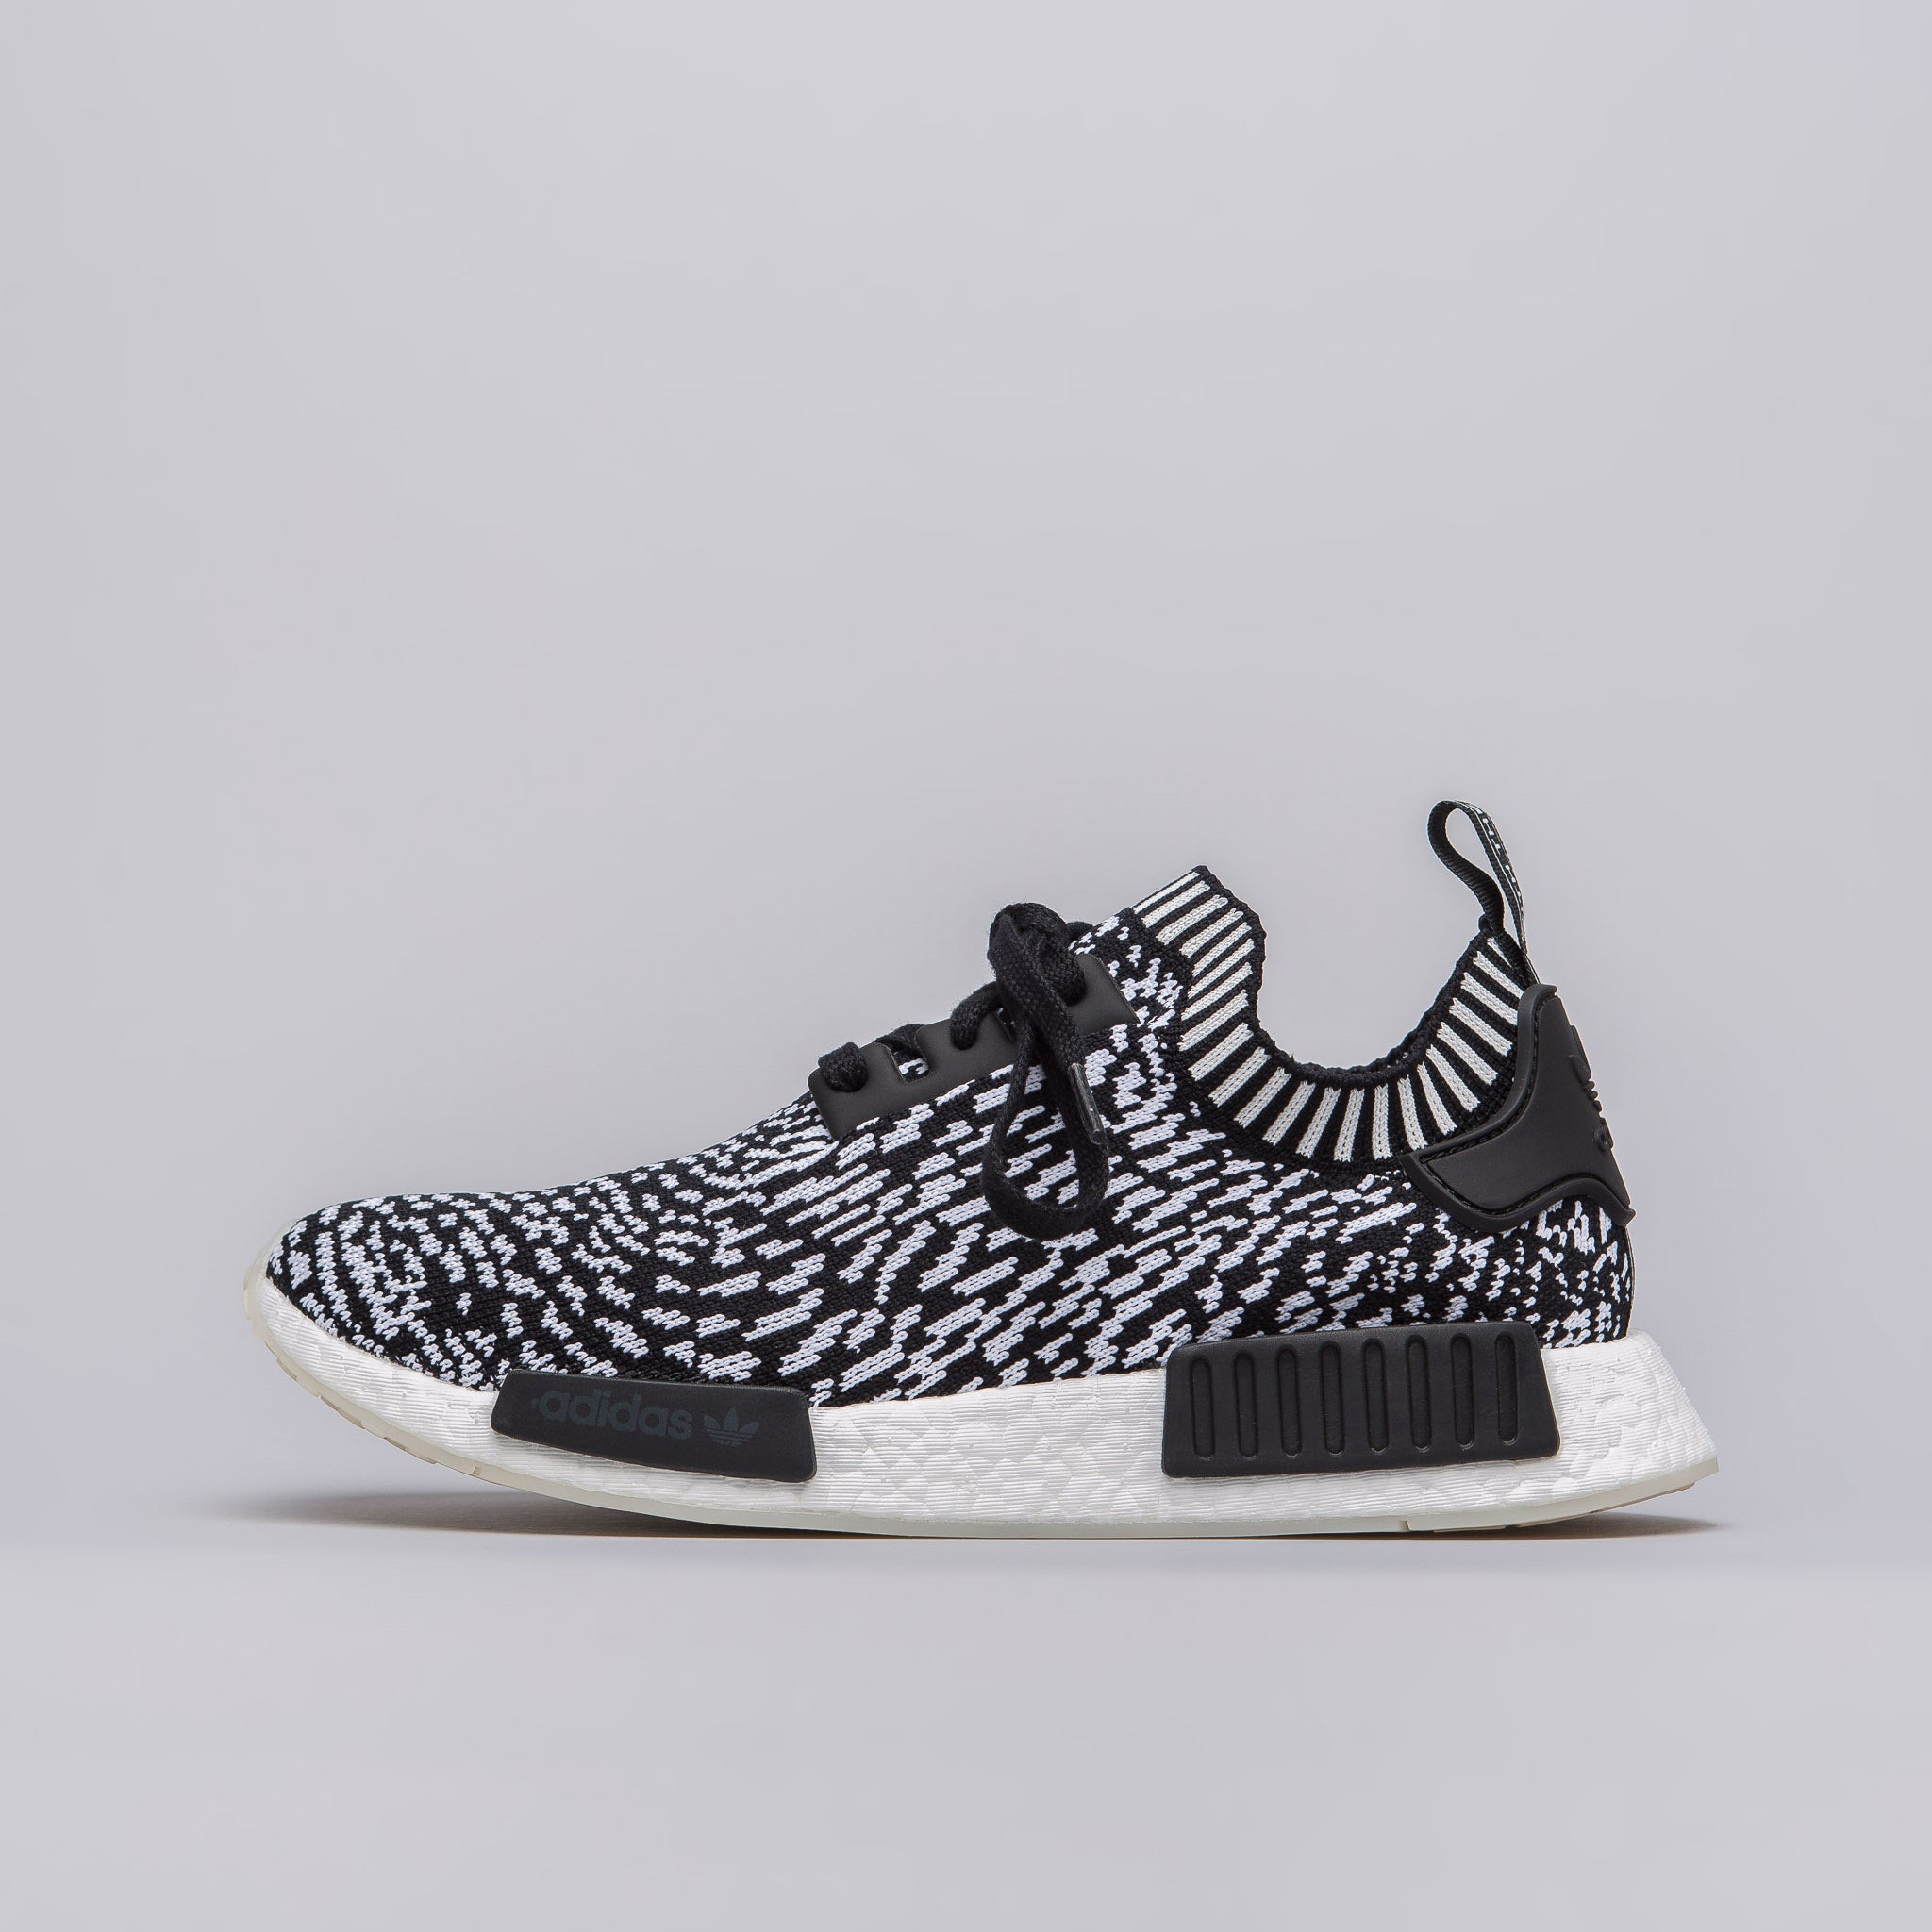 adidas Originals NMD R1 Reflective White and On Feet